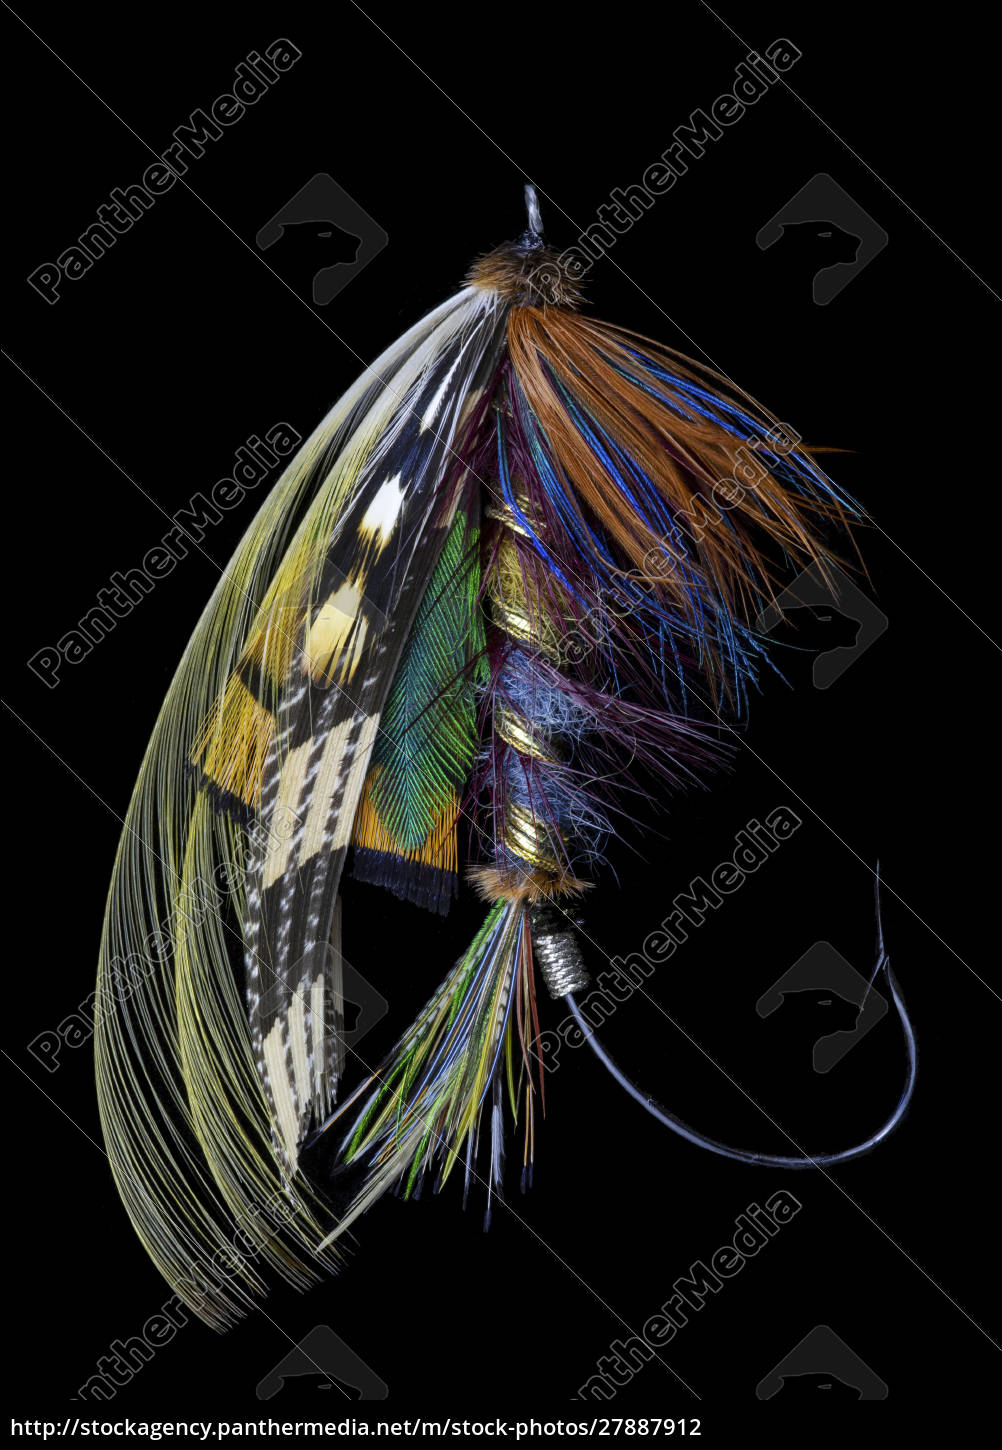 atlantic, salmon, fly, designs, 'blacker, ghost' - 27887912